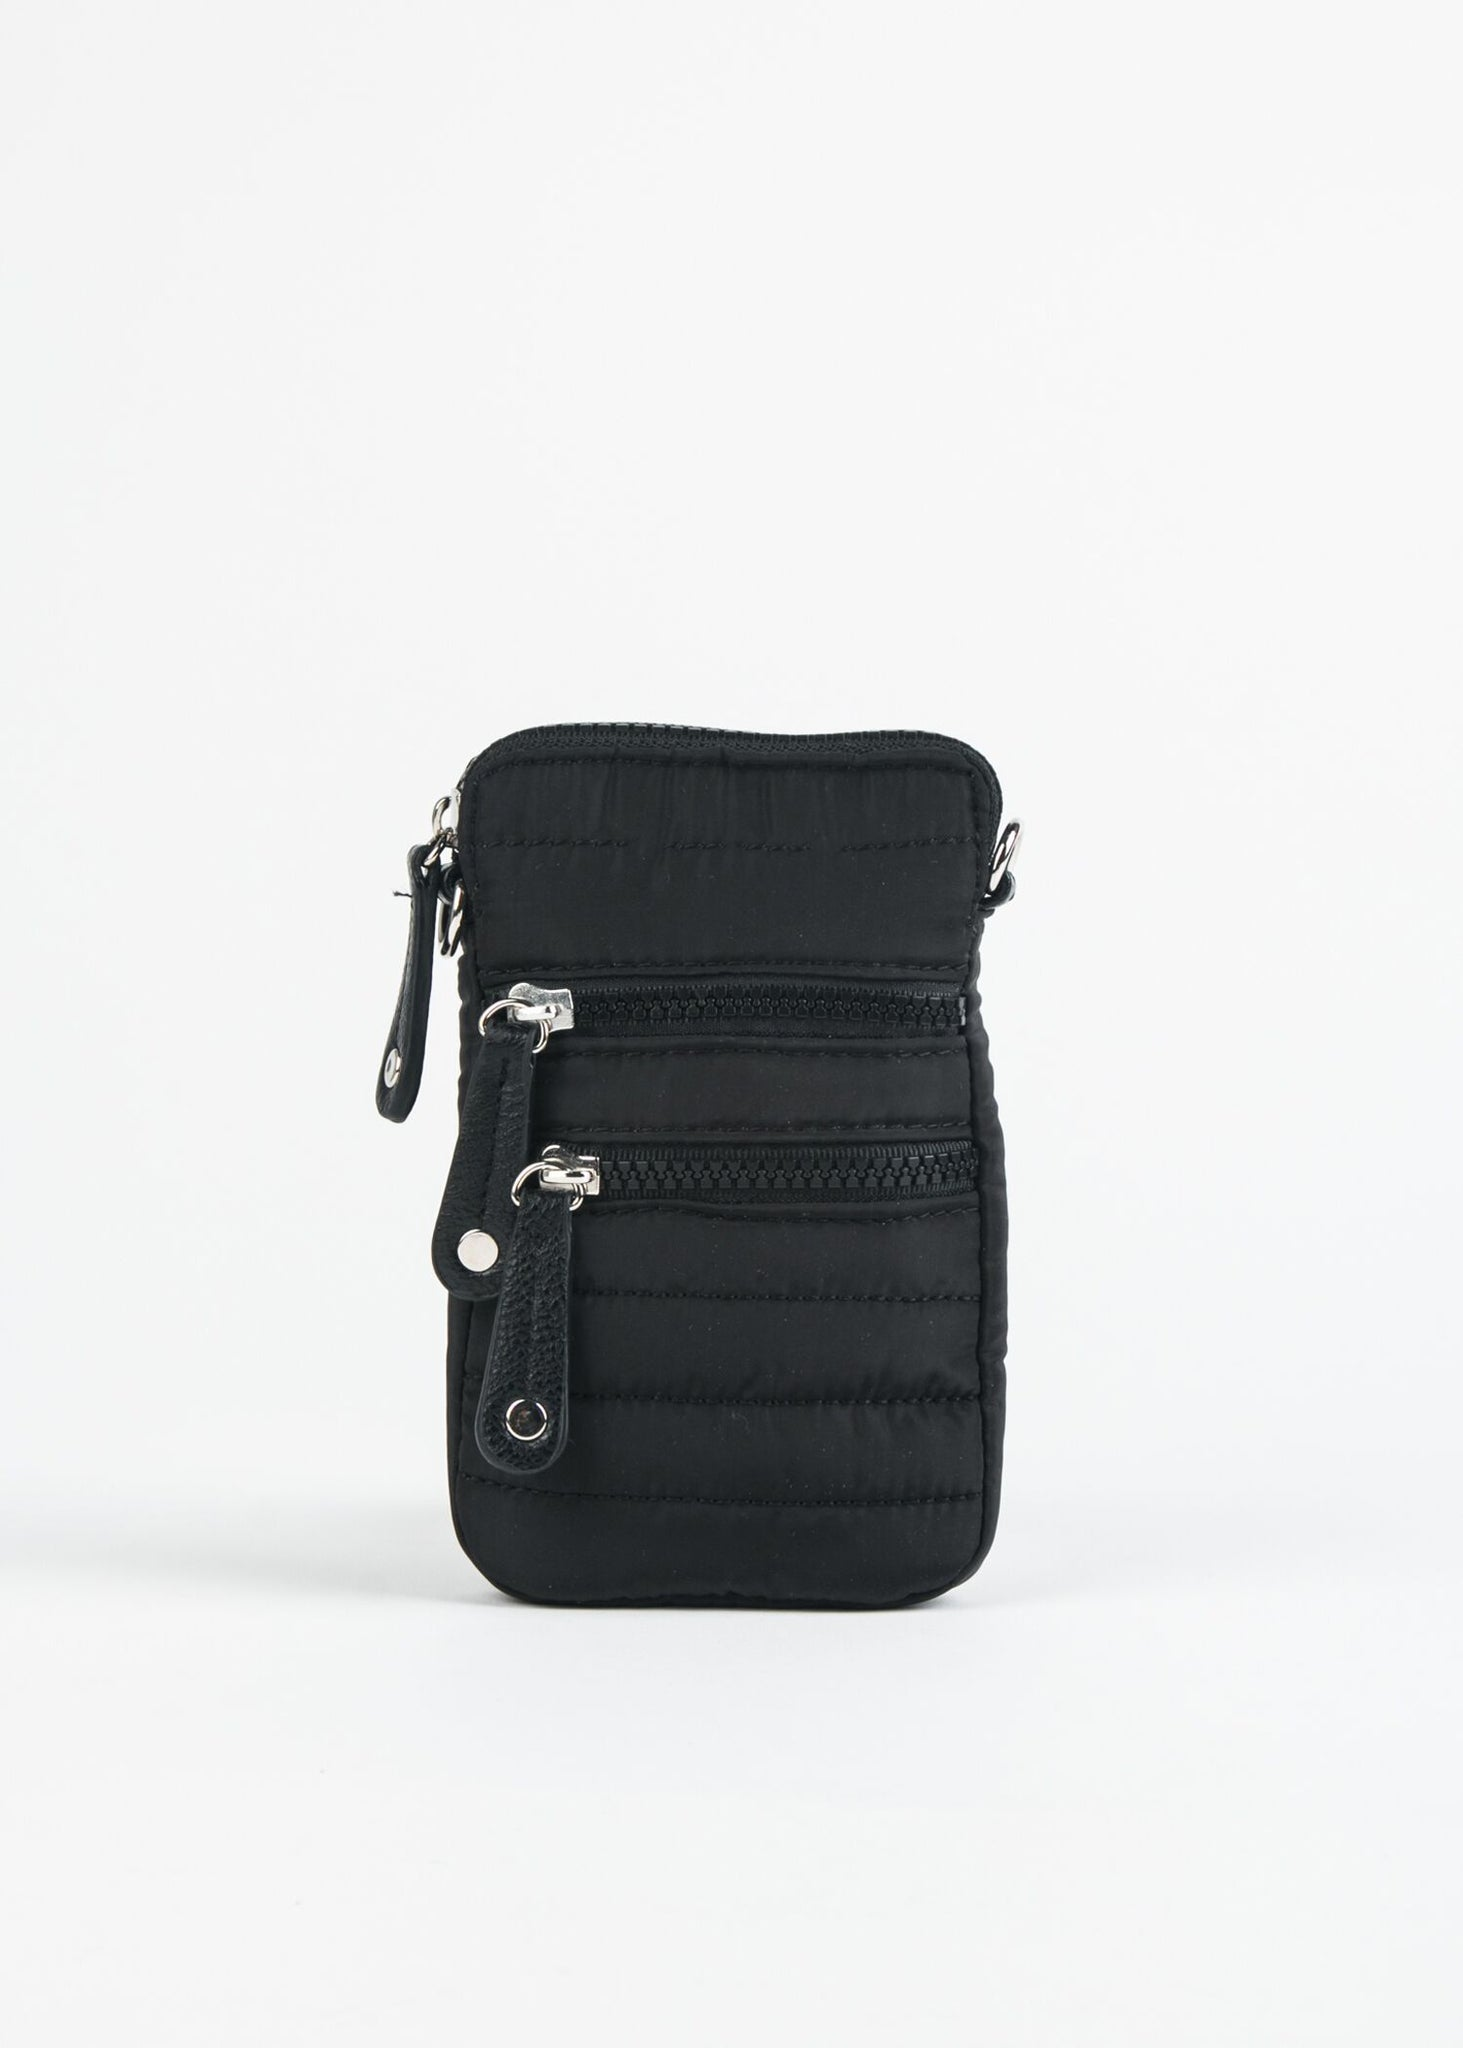 NYLON QUILT CROSSBODY PHONE CASE